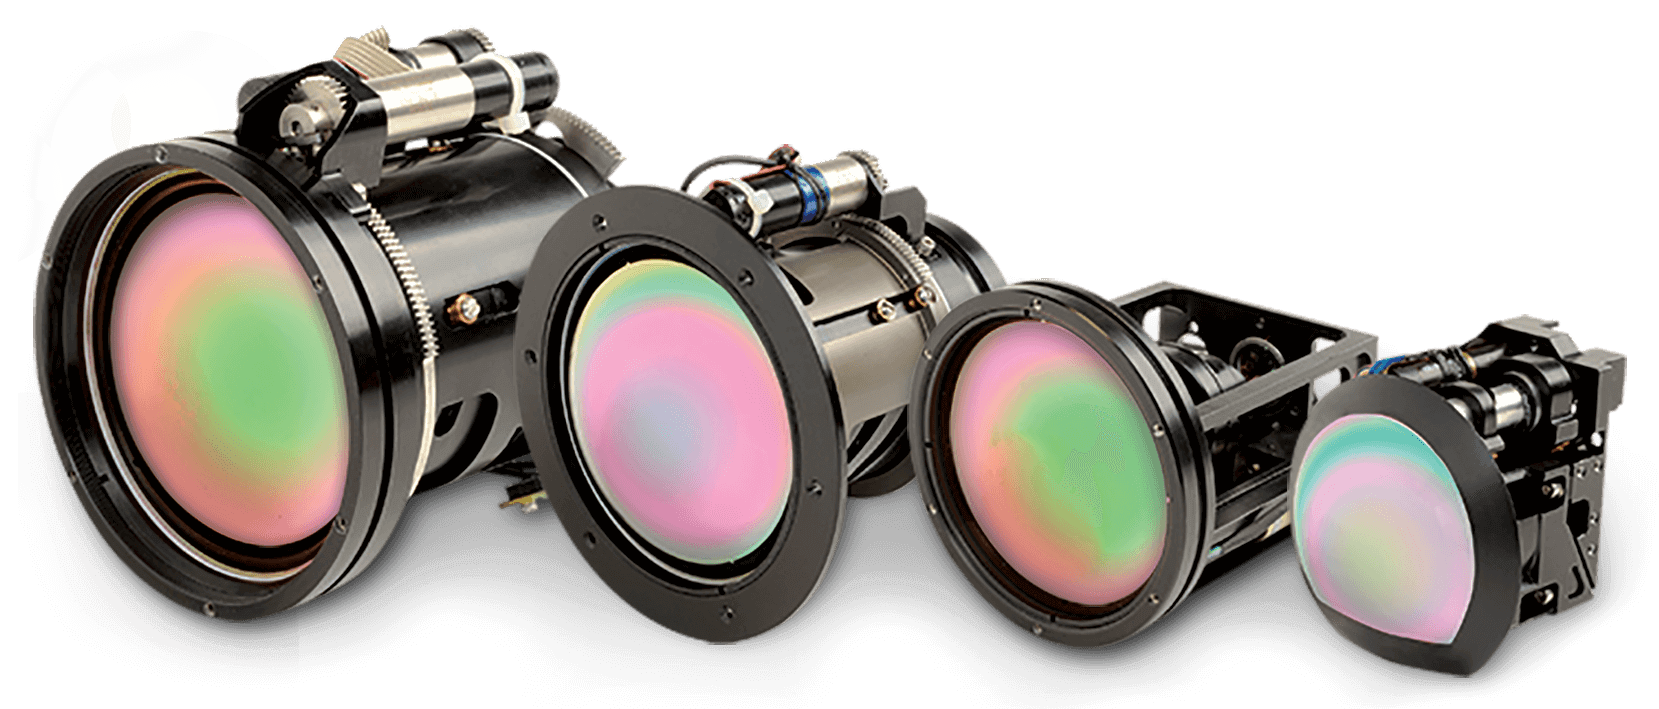 About rp optical lab-4 thermal lenses